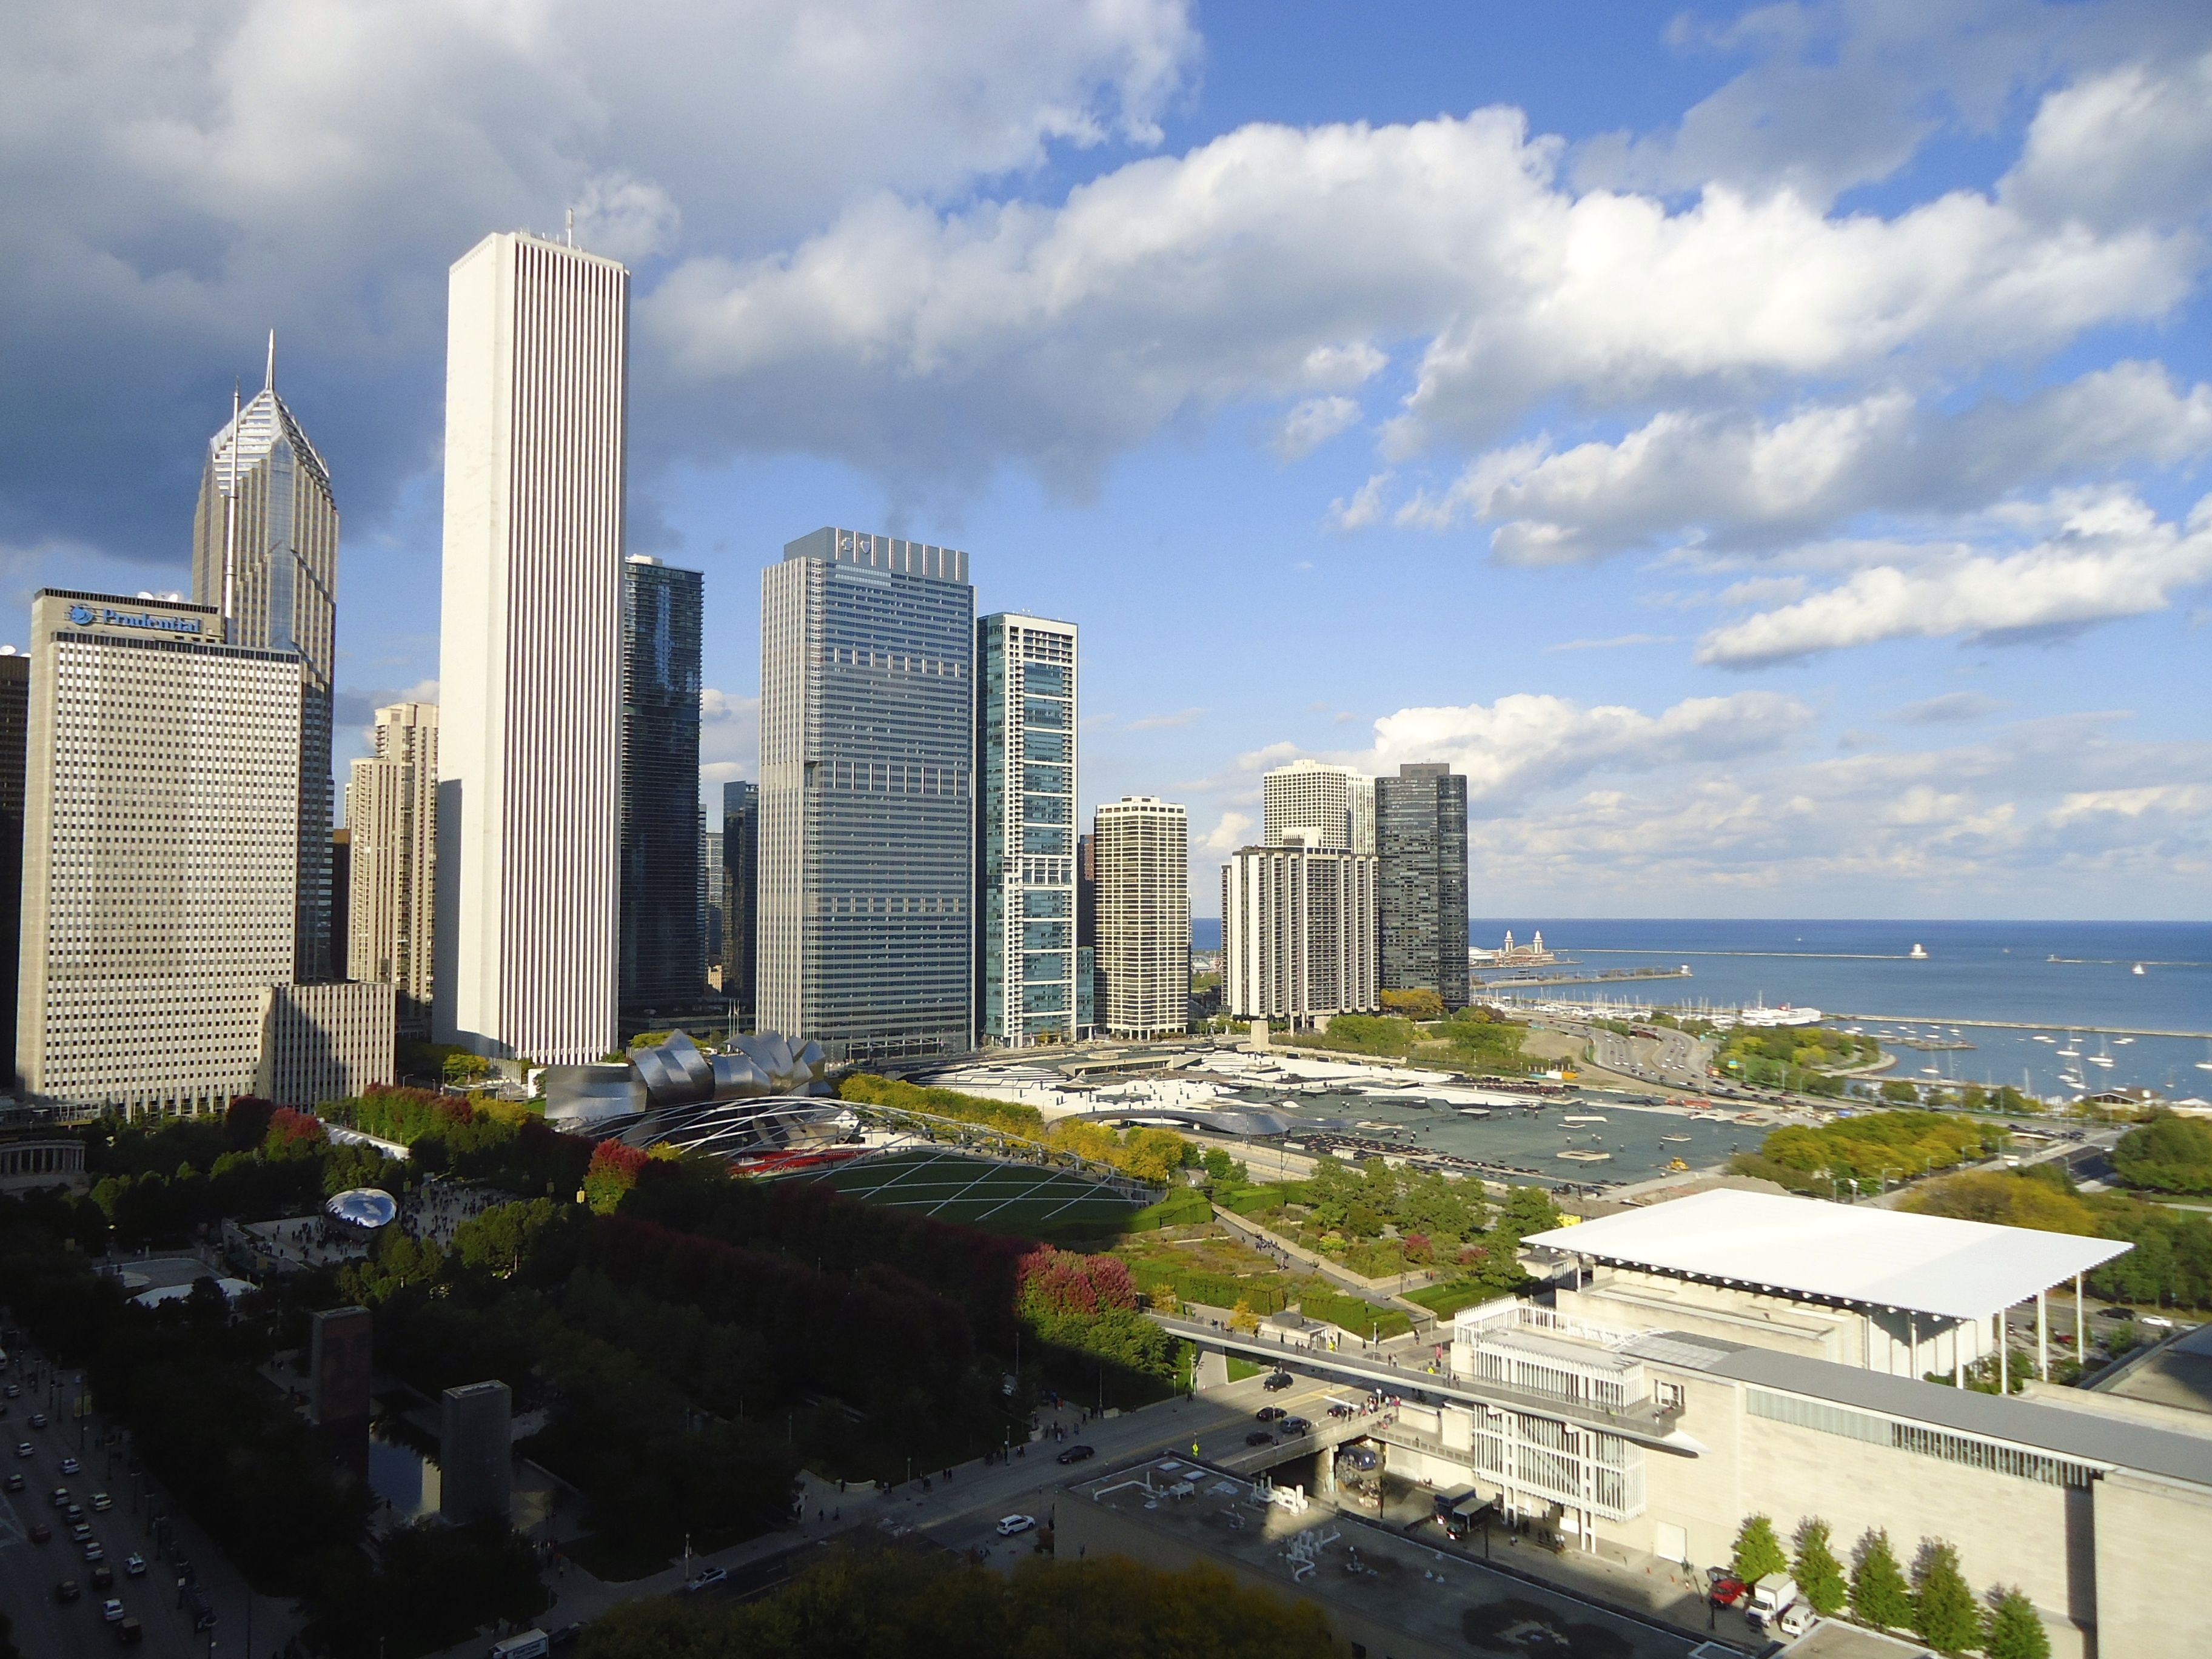 Elevated view of Millennium Park, Lake Michigan in background